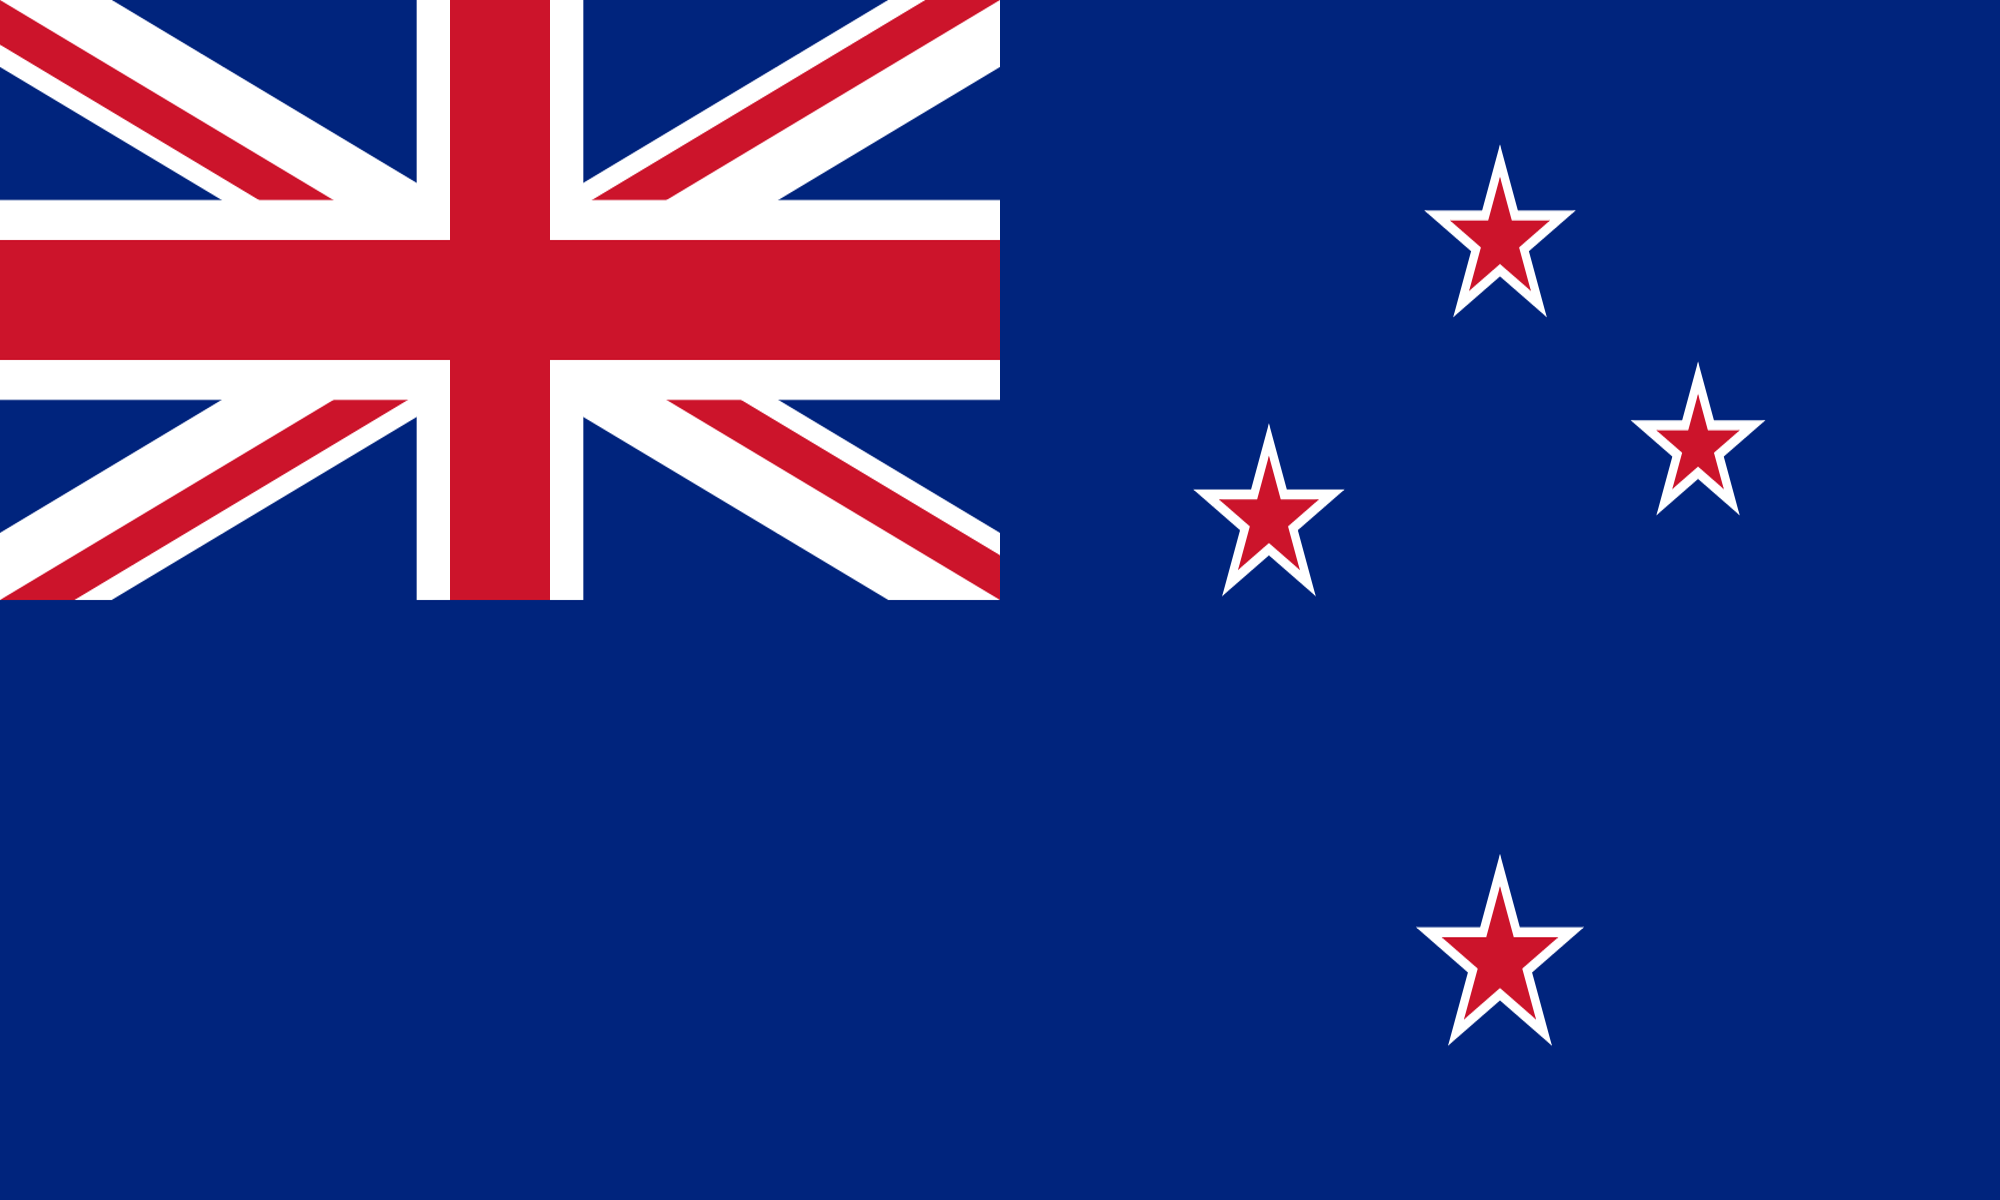 new zealand country analysis New zealand analysis: 2015 lobal audit committee survey 2 audit committees want to spend more time on risk oversight – particularly cybersecurity and the pace of.